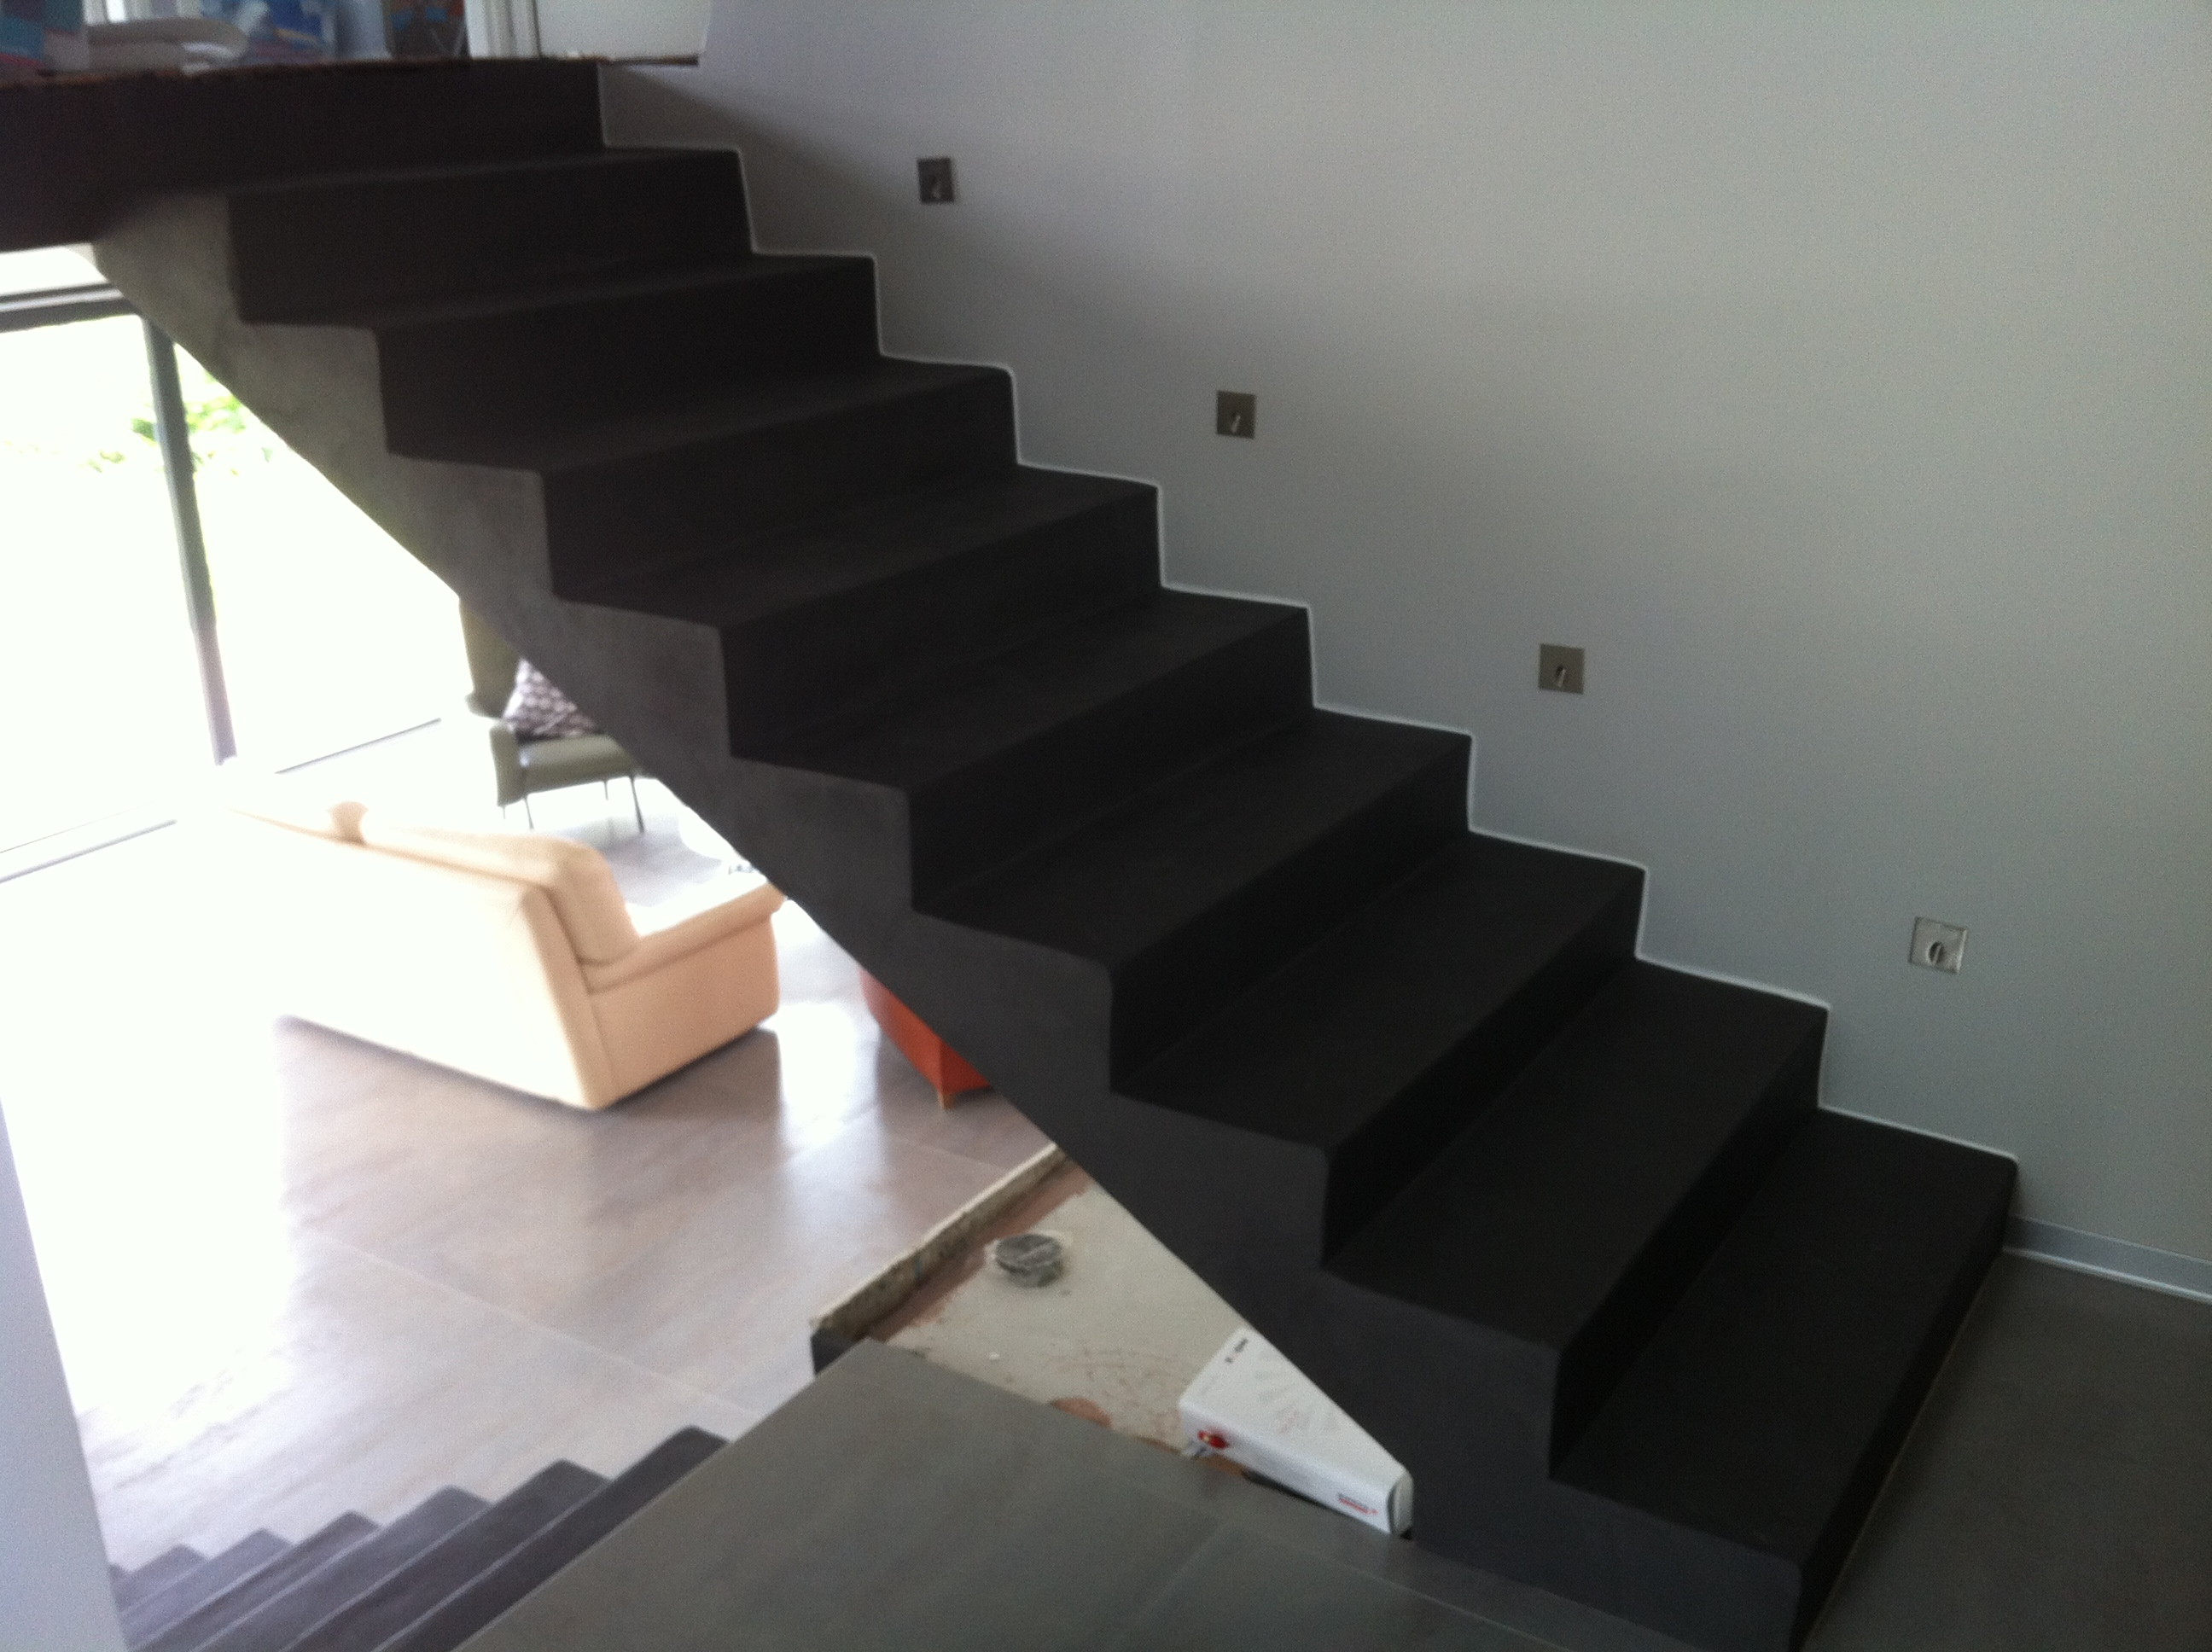 renovation escalier beton interieur dw71 jornalagora. Black Bedroom Furniture Sets. Home Design Ideas